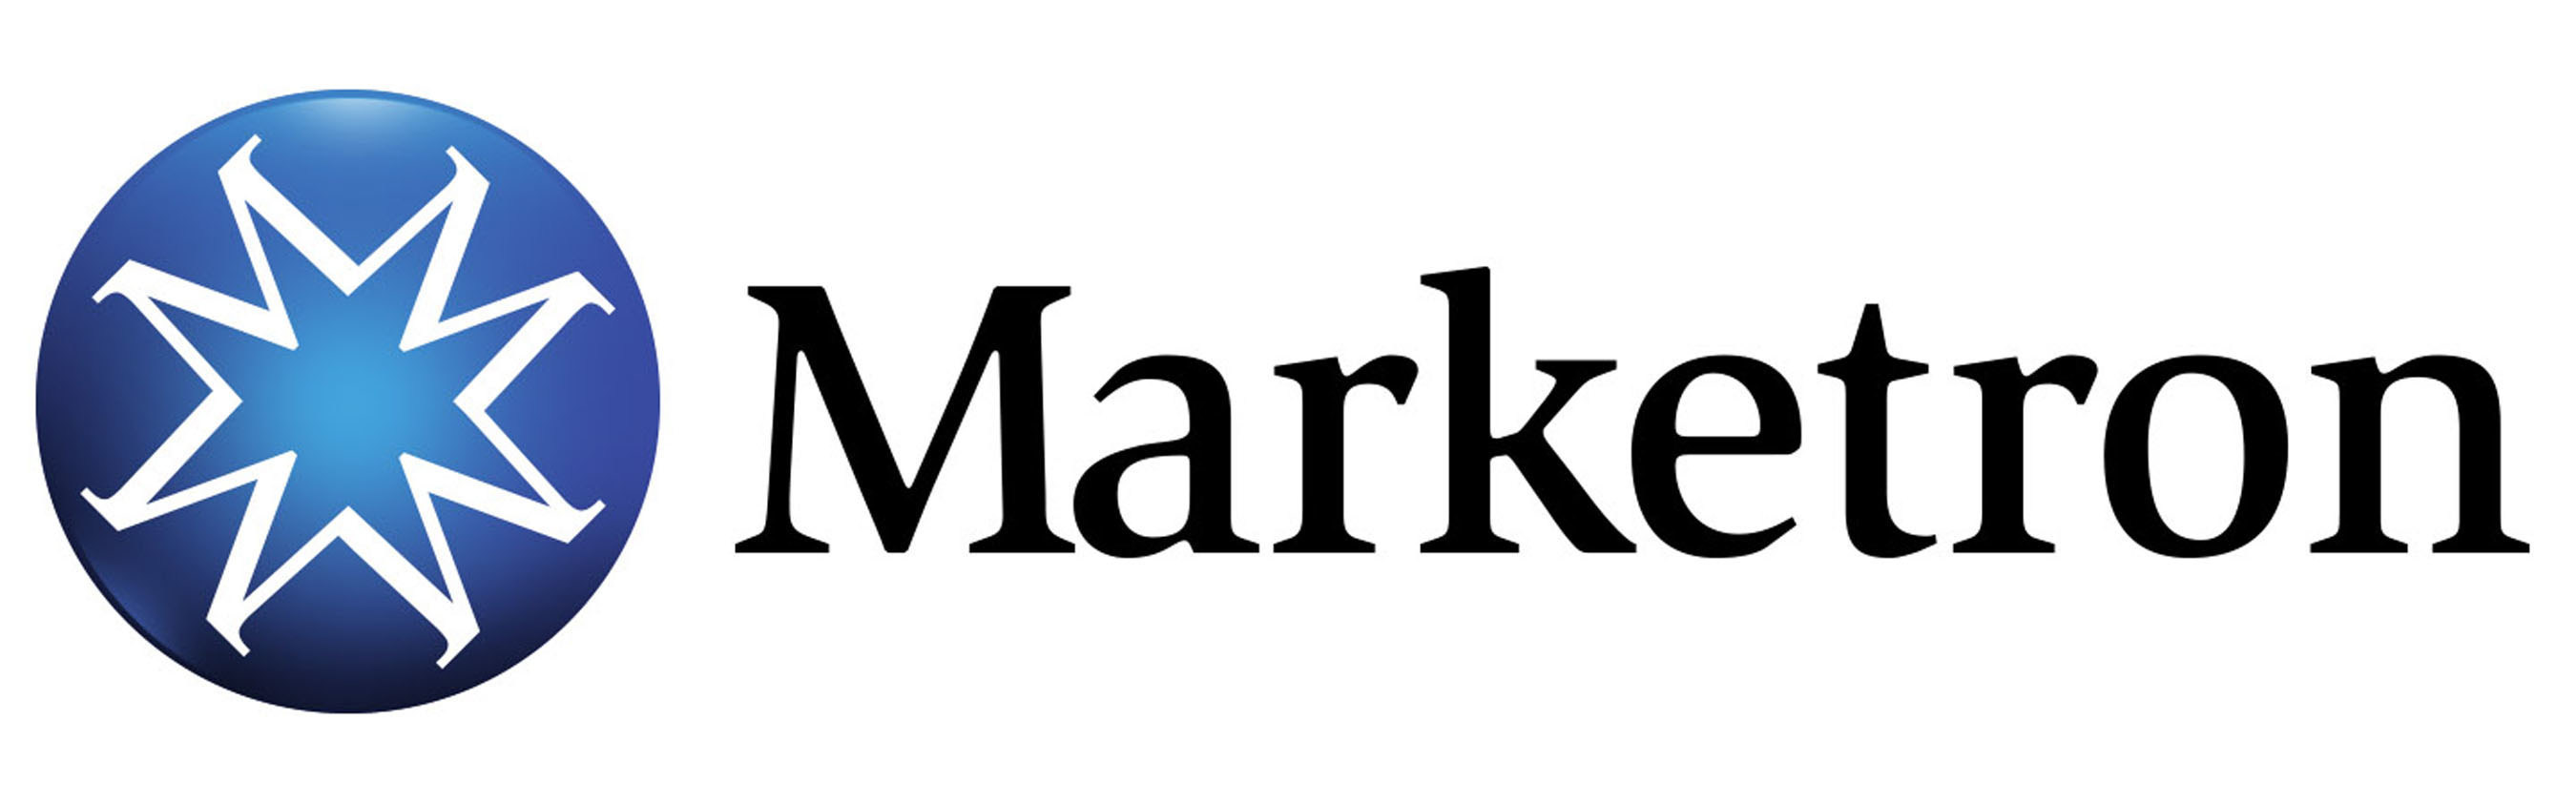 Marketron, enabling media companies to manage revenue and audience touch points with innovative solutions